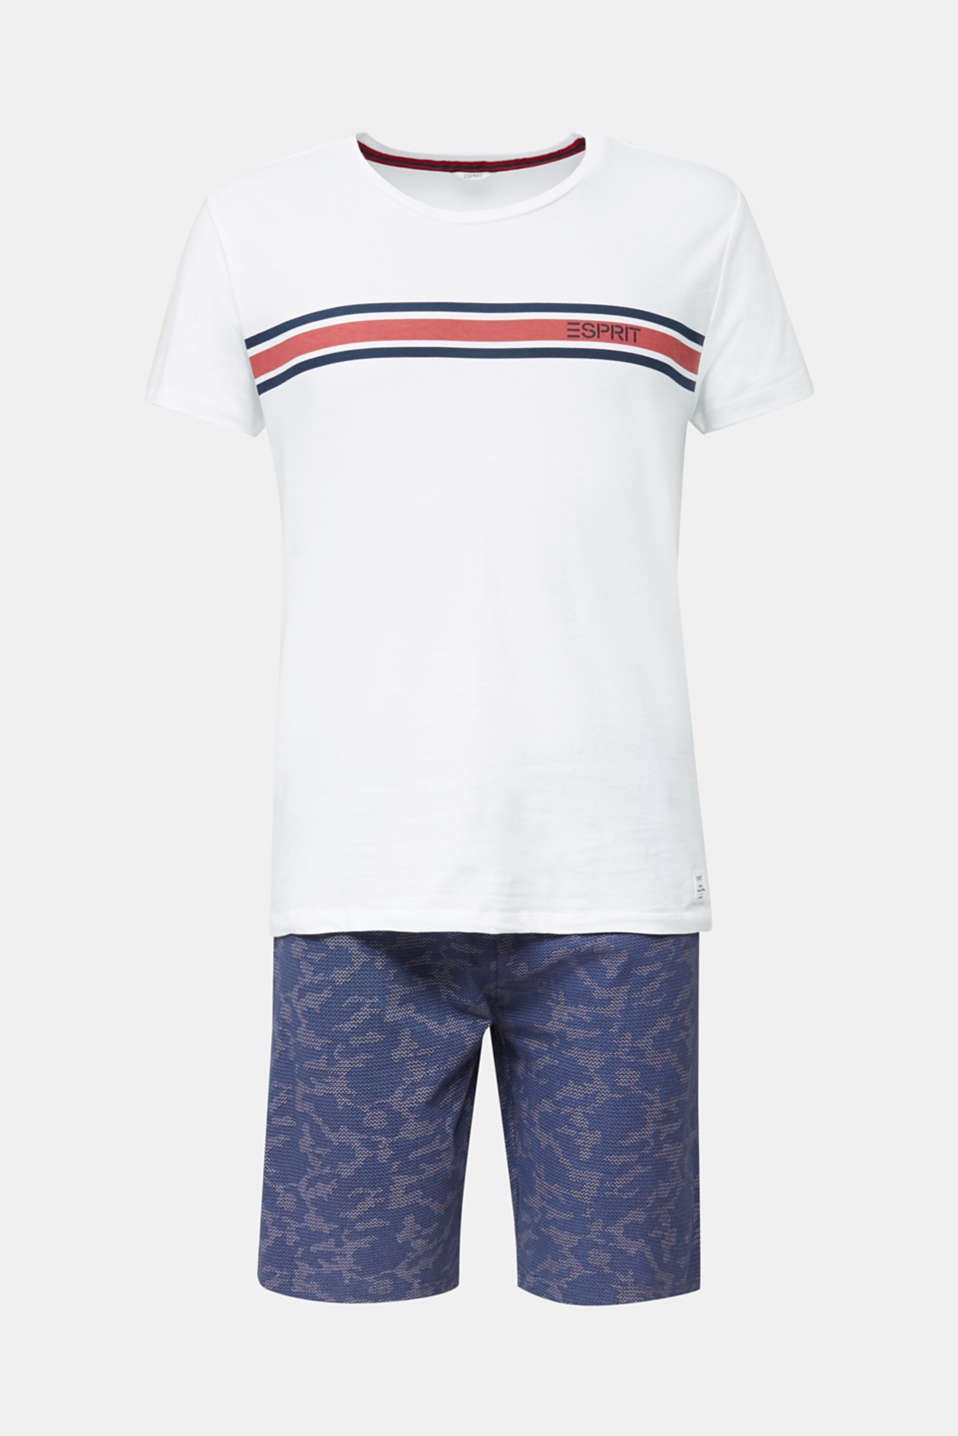 Printed jersey pyjamas, 100% cotton, NAVY 2, detail image number 3